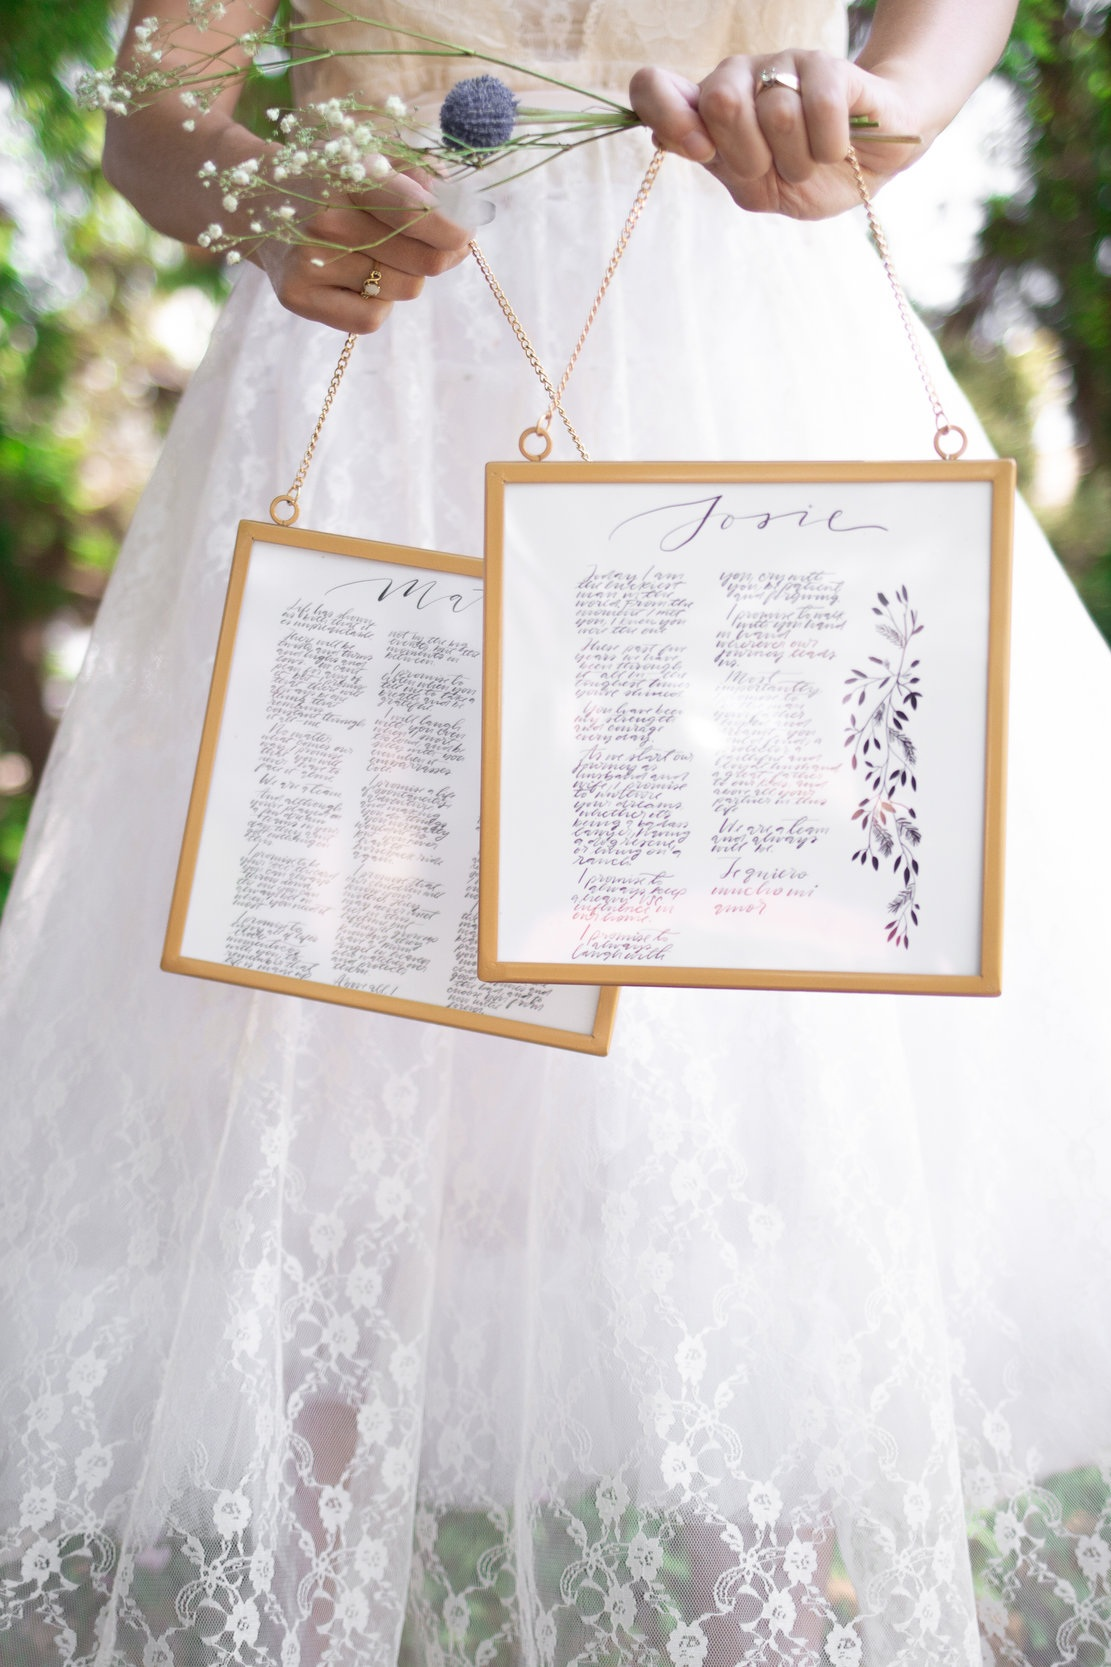 The Cute Meet - Hand-written vows | 8x8 Square Gold Frames hanging side by side; Clear Plastic, not Glass$235